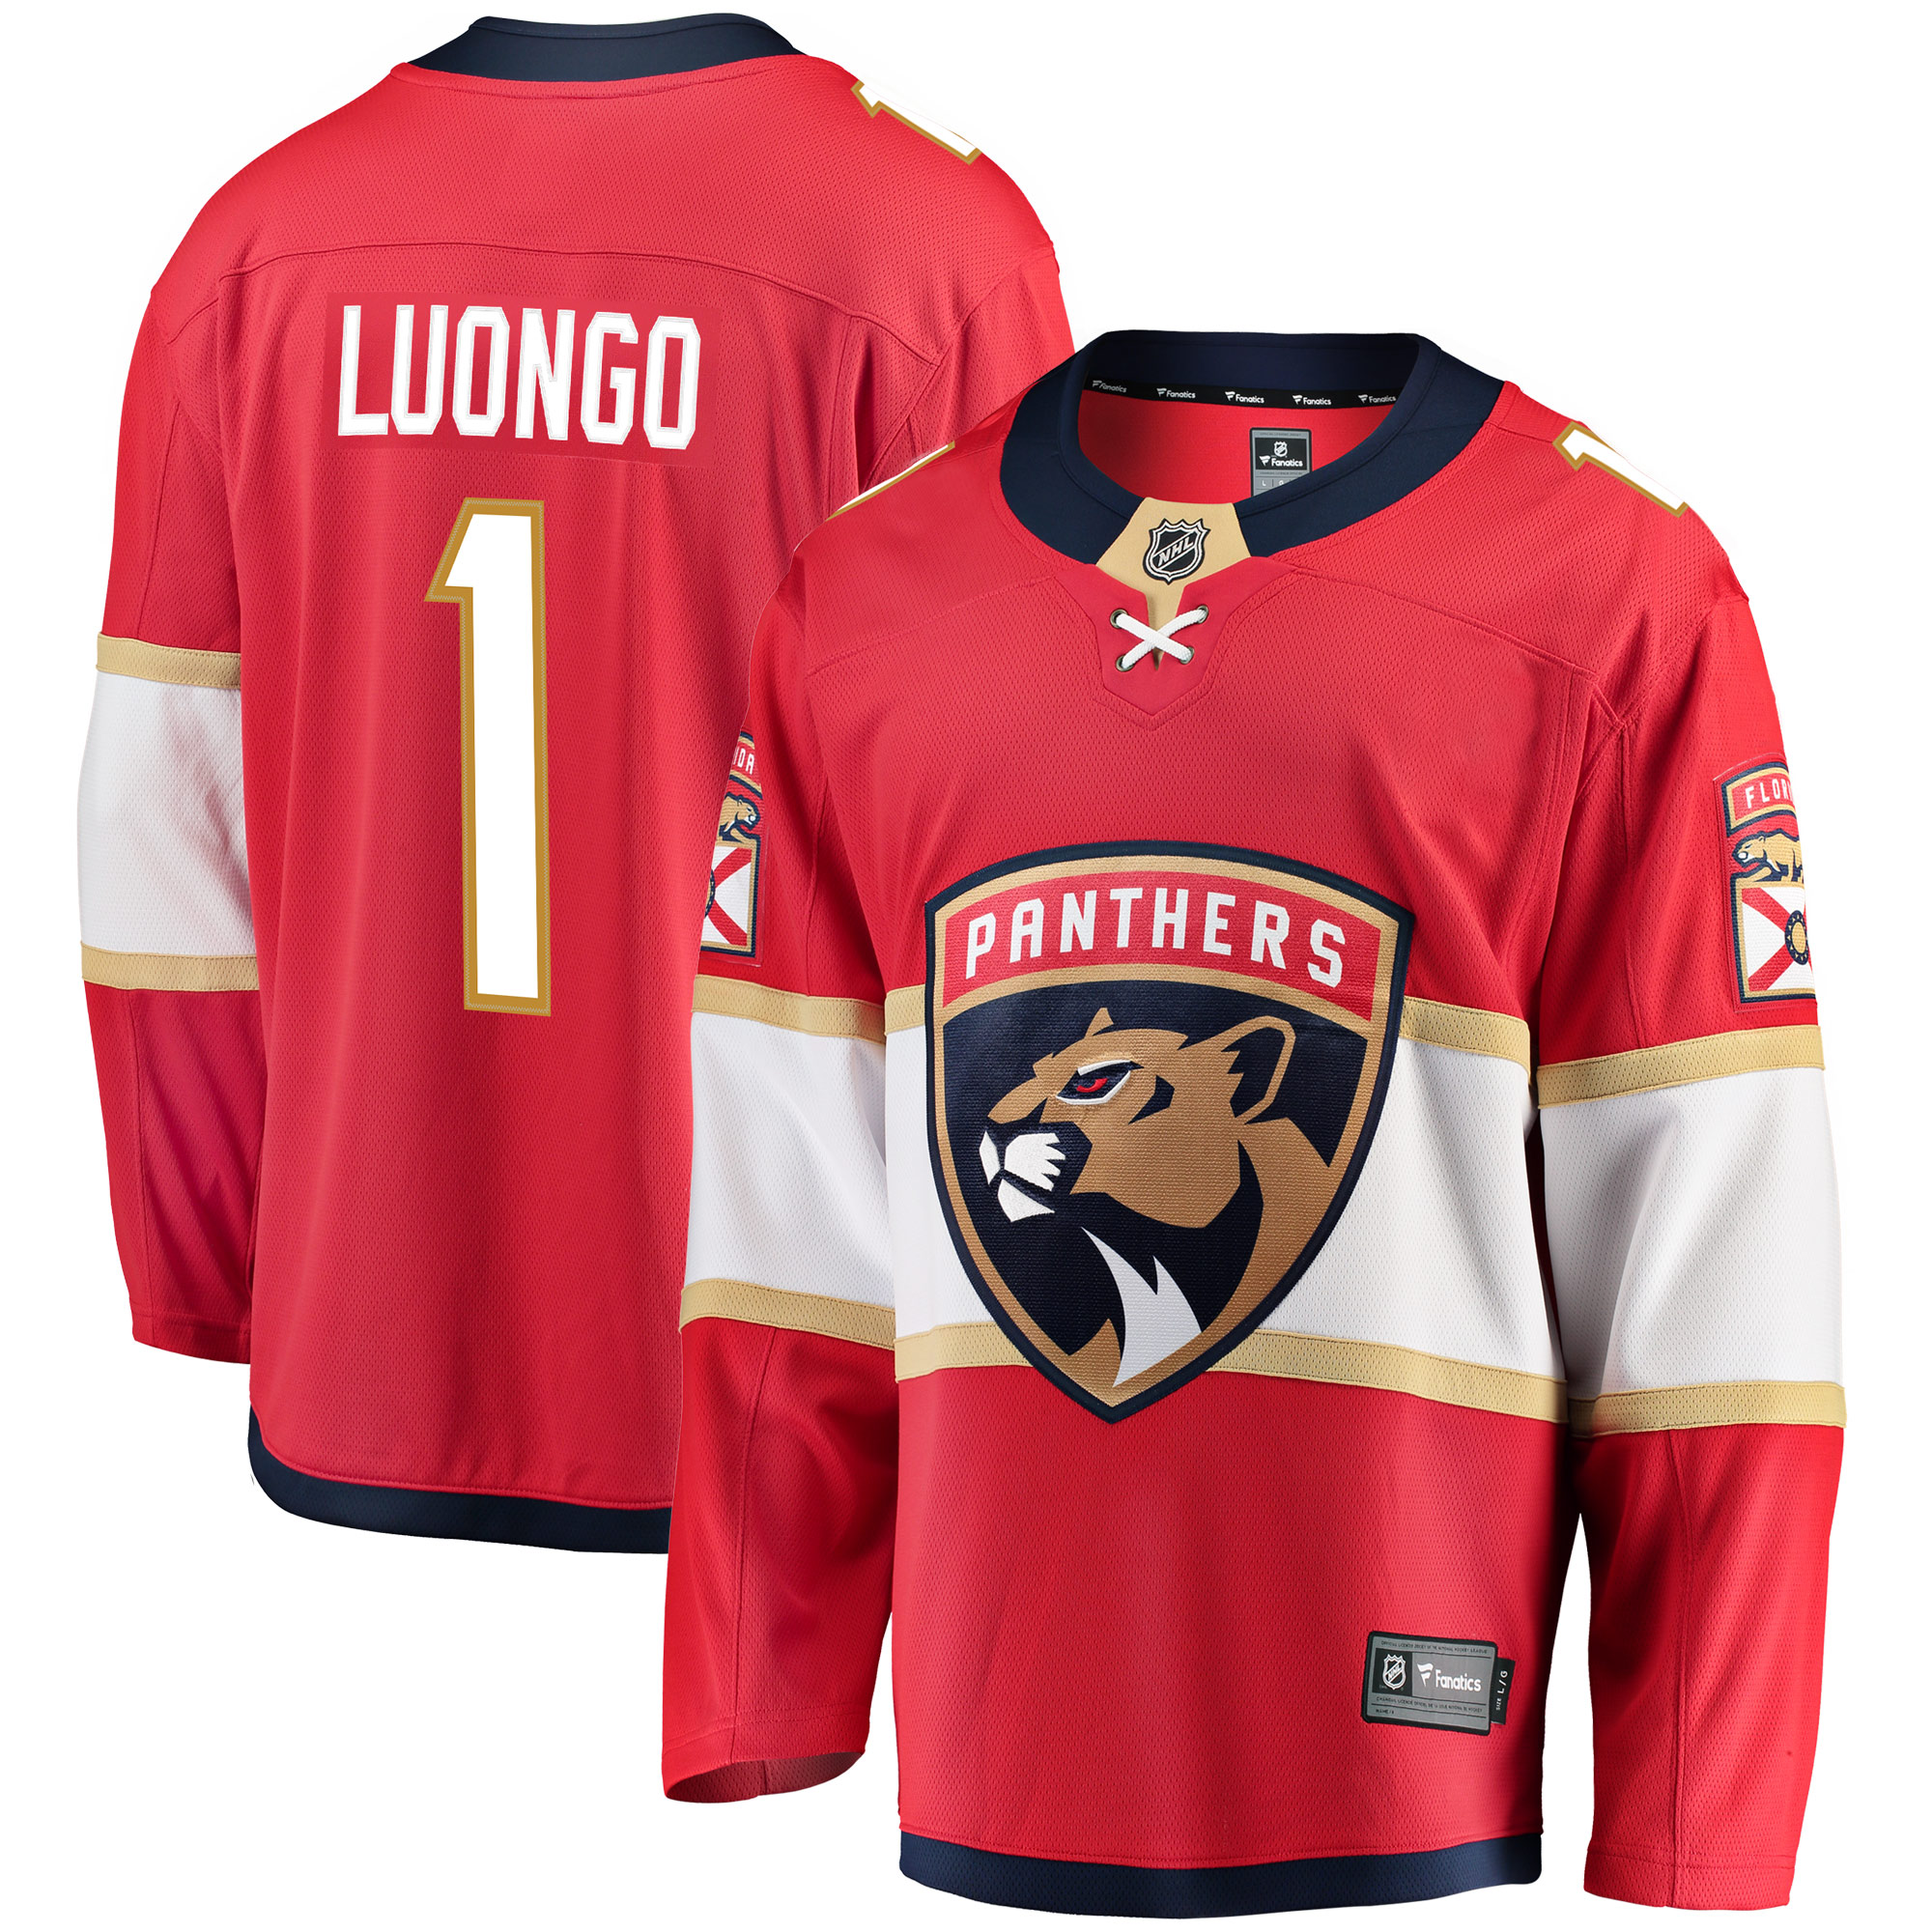 Roberto Luongo Florida Panthers Fanatics Branded Breakaway Jersey - Red